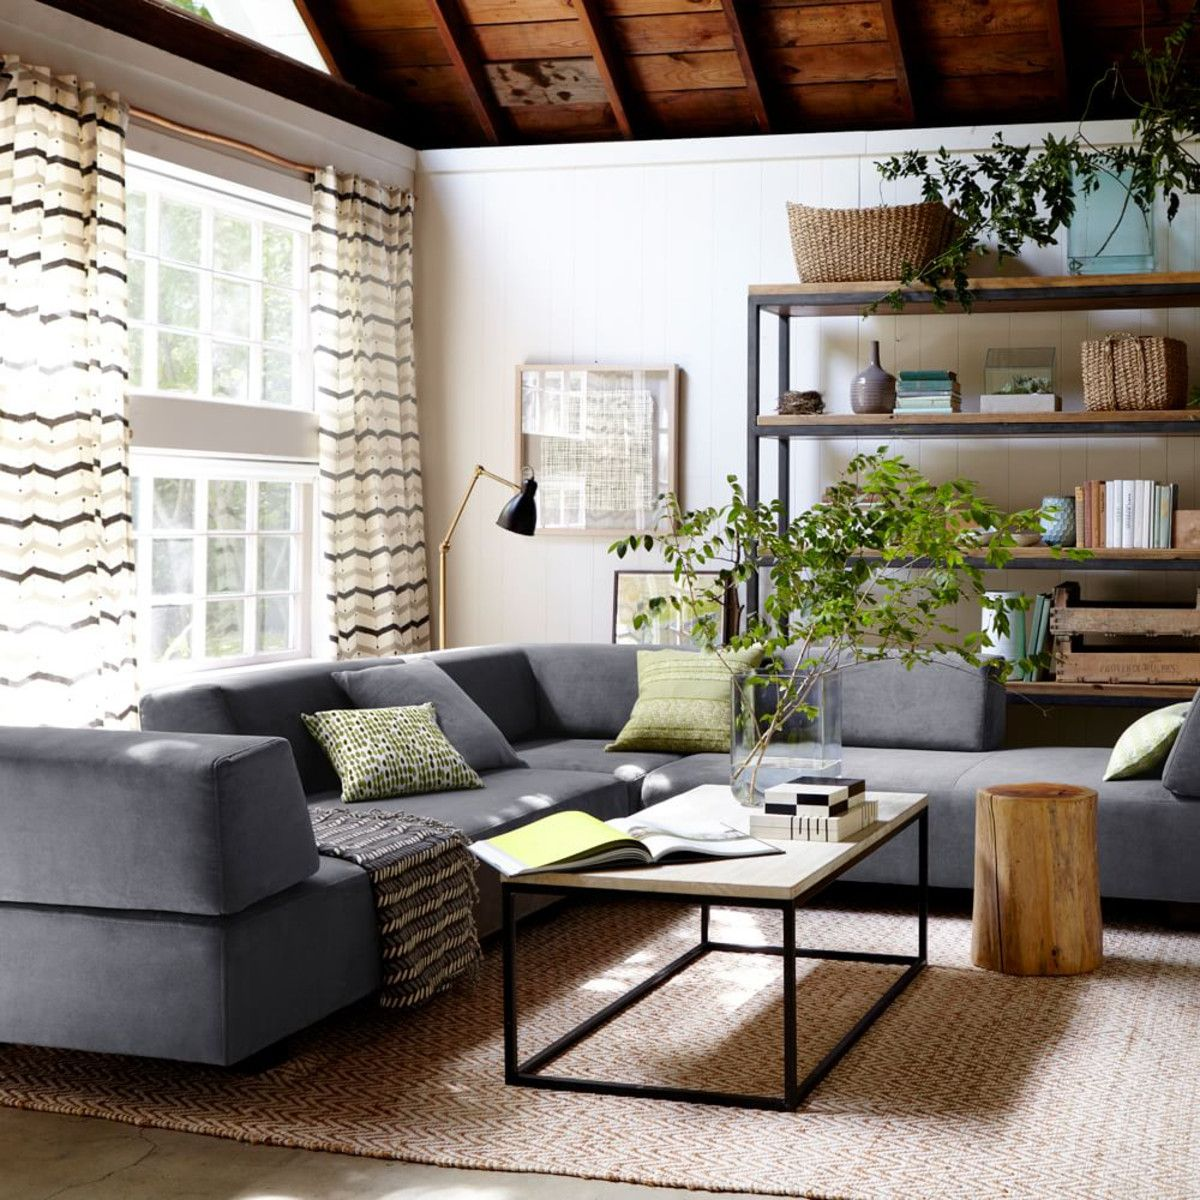 west elm tillary - this layout might work too - pull away from the wall and put shelving behind couch : west elm tillary sectional - Sectionals, Sofas & Couches